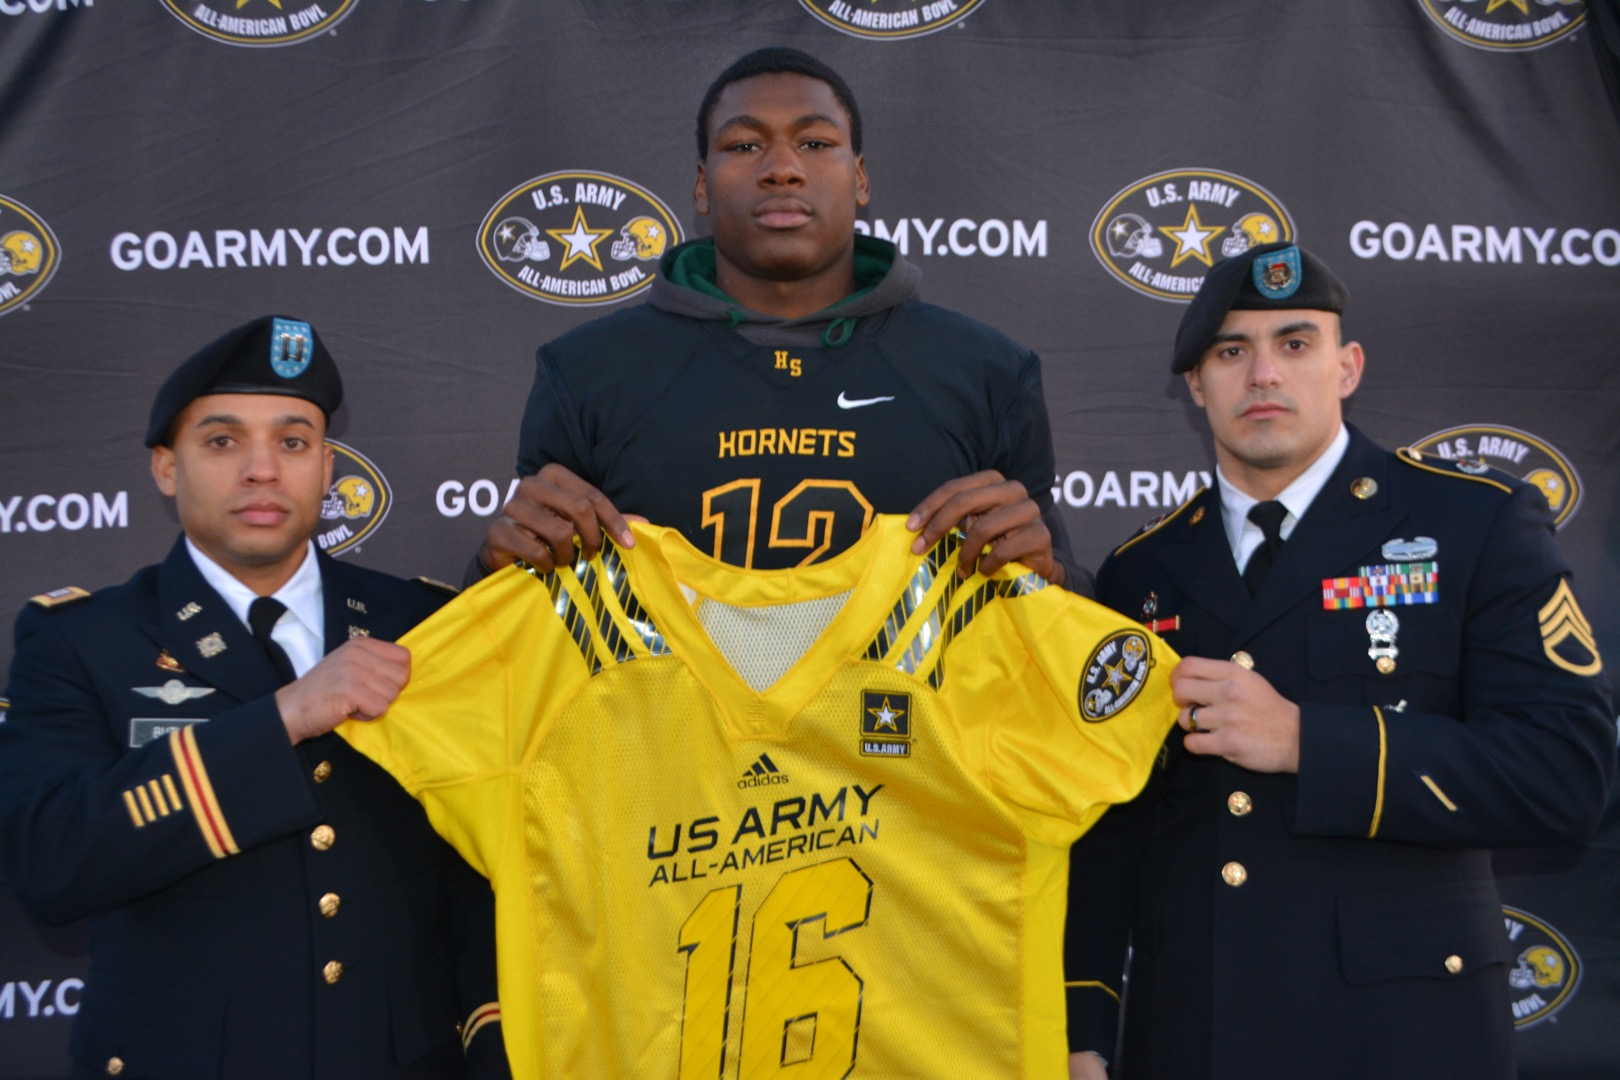 Josh King receivers his Army All-American Bowl jersey from Captain John Butler (left) and Staff Sergeant Yoel Lorenzo.